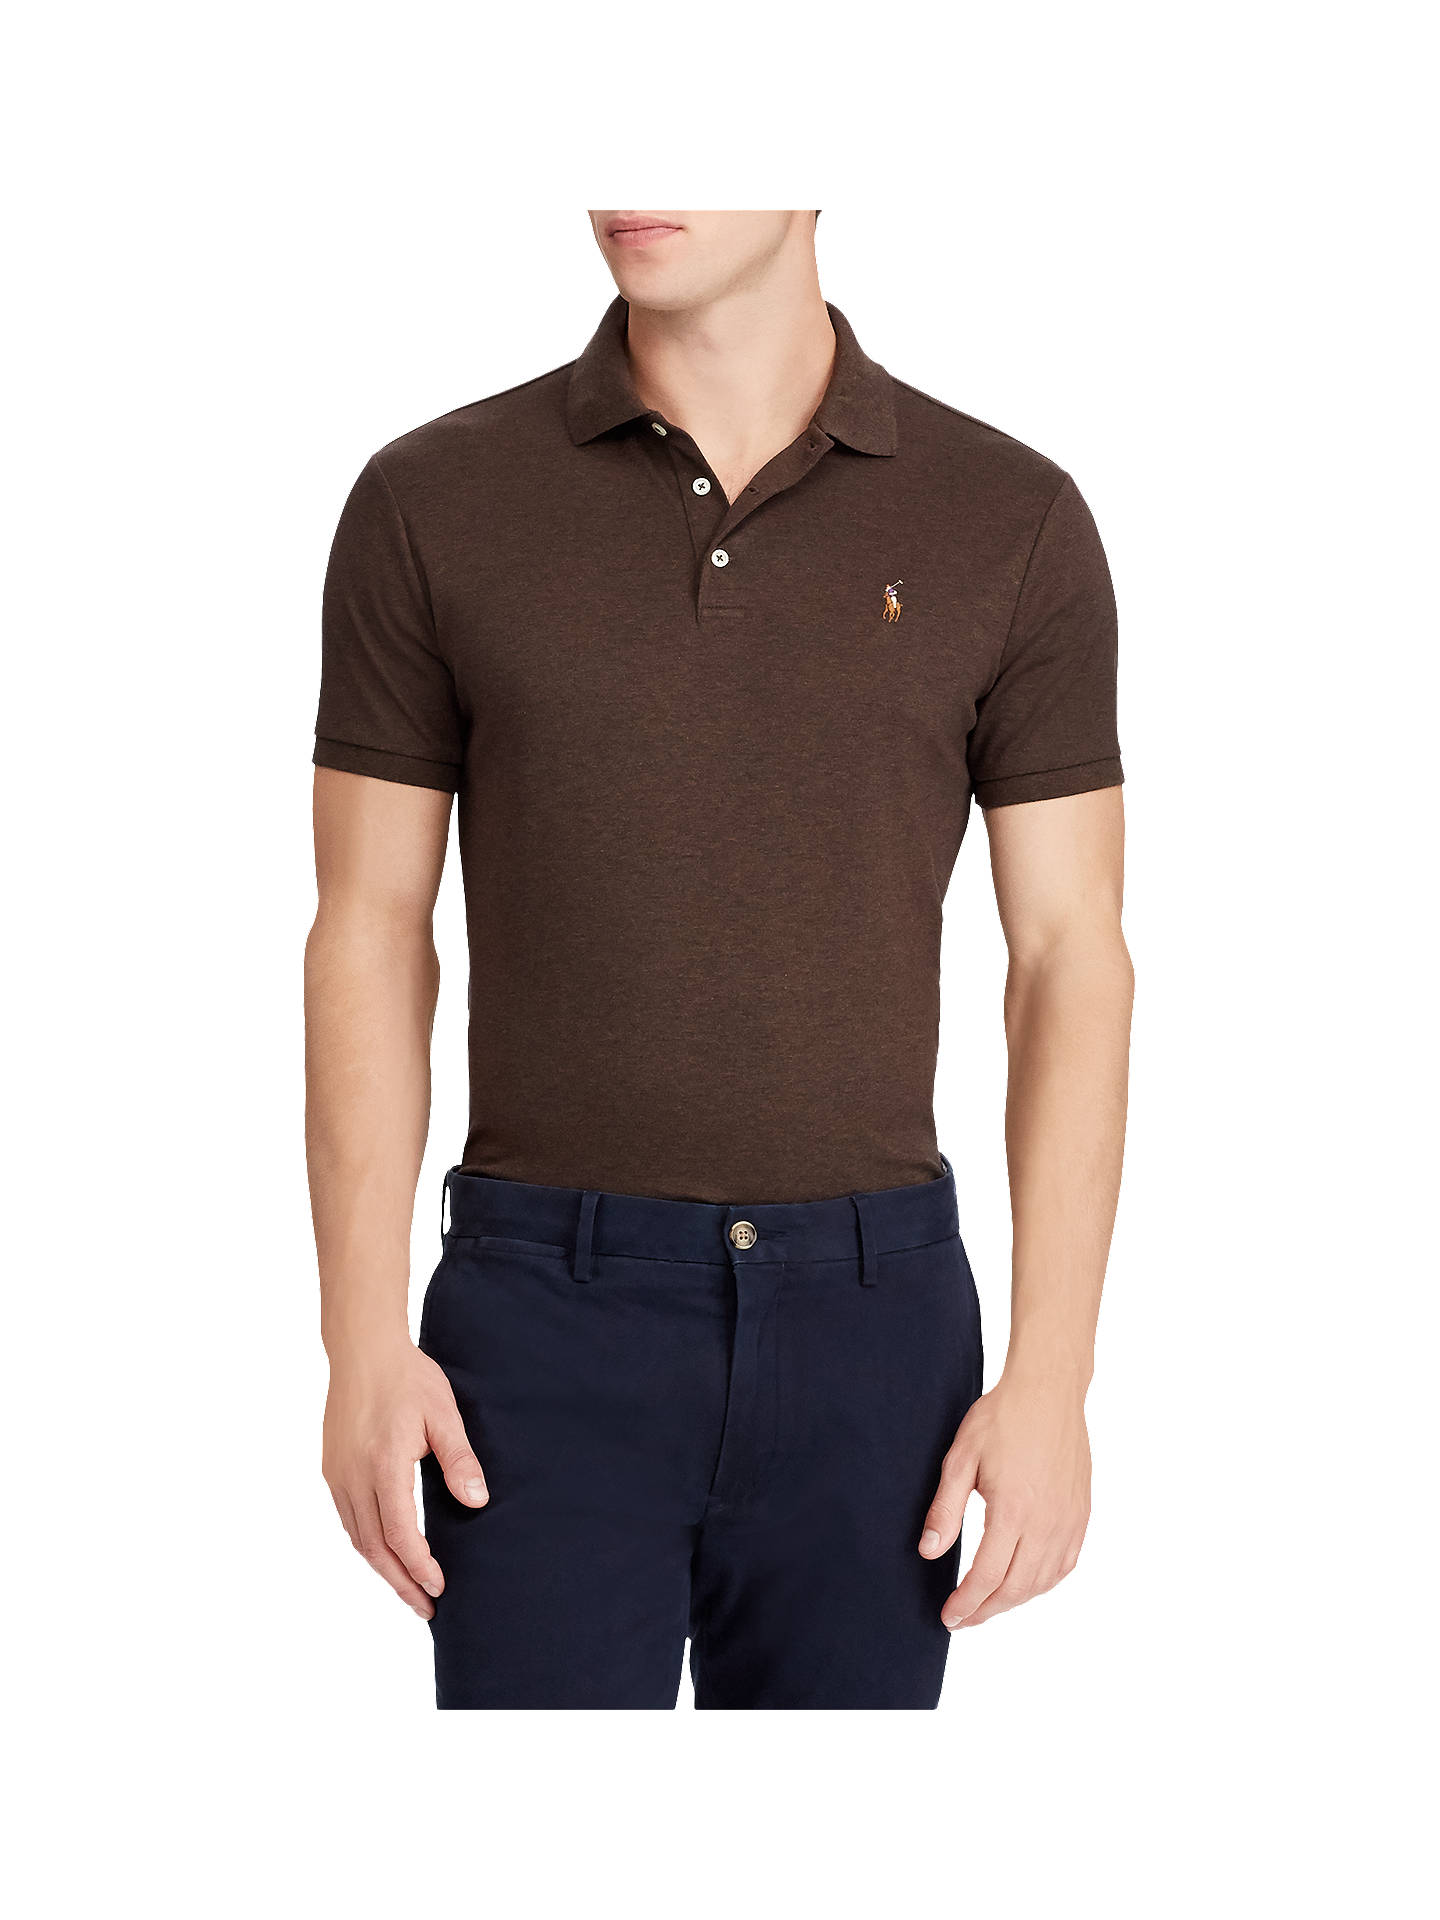 53814fec ... low cost buypolo ralph lauren pima cotton slim fit polo shirt alpine  brown heather s online